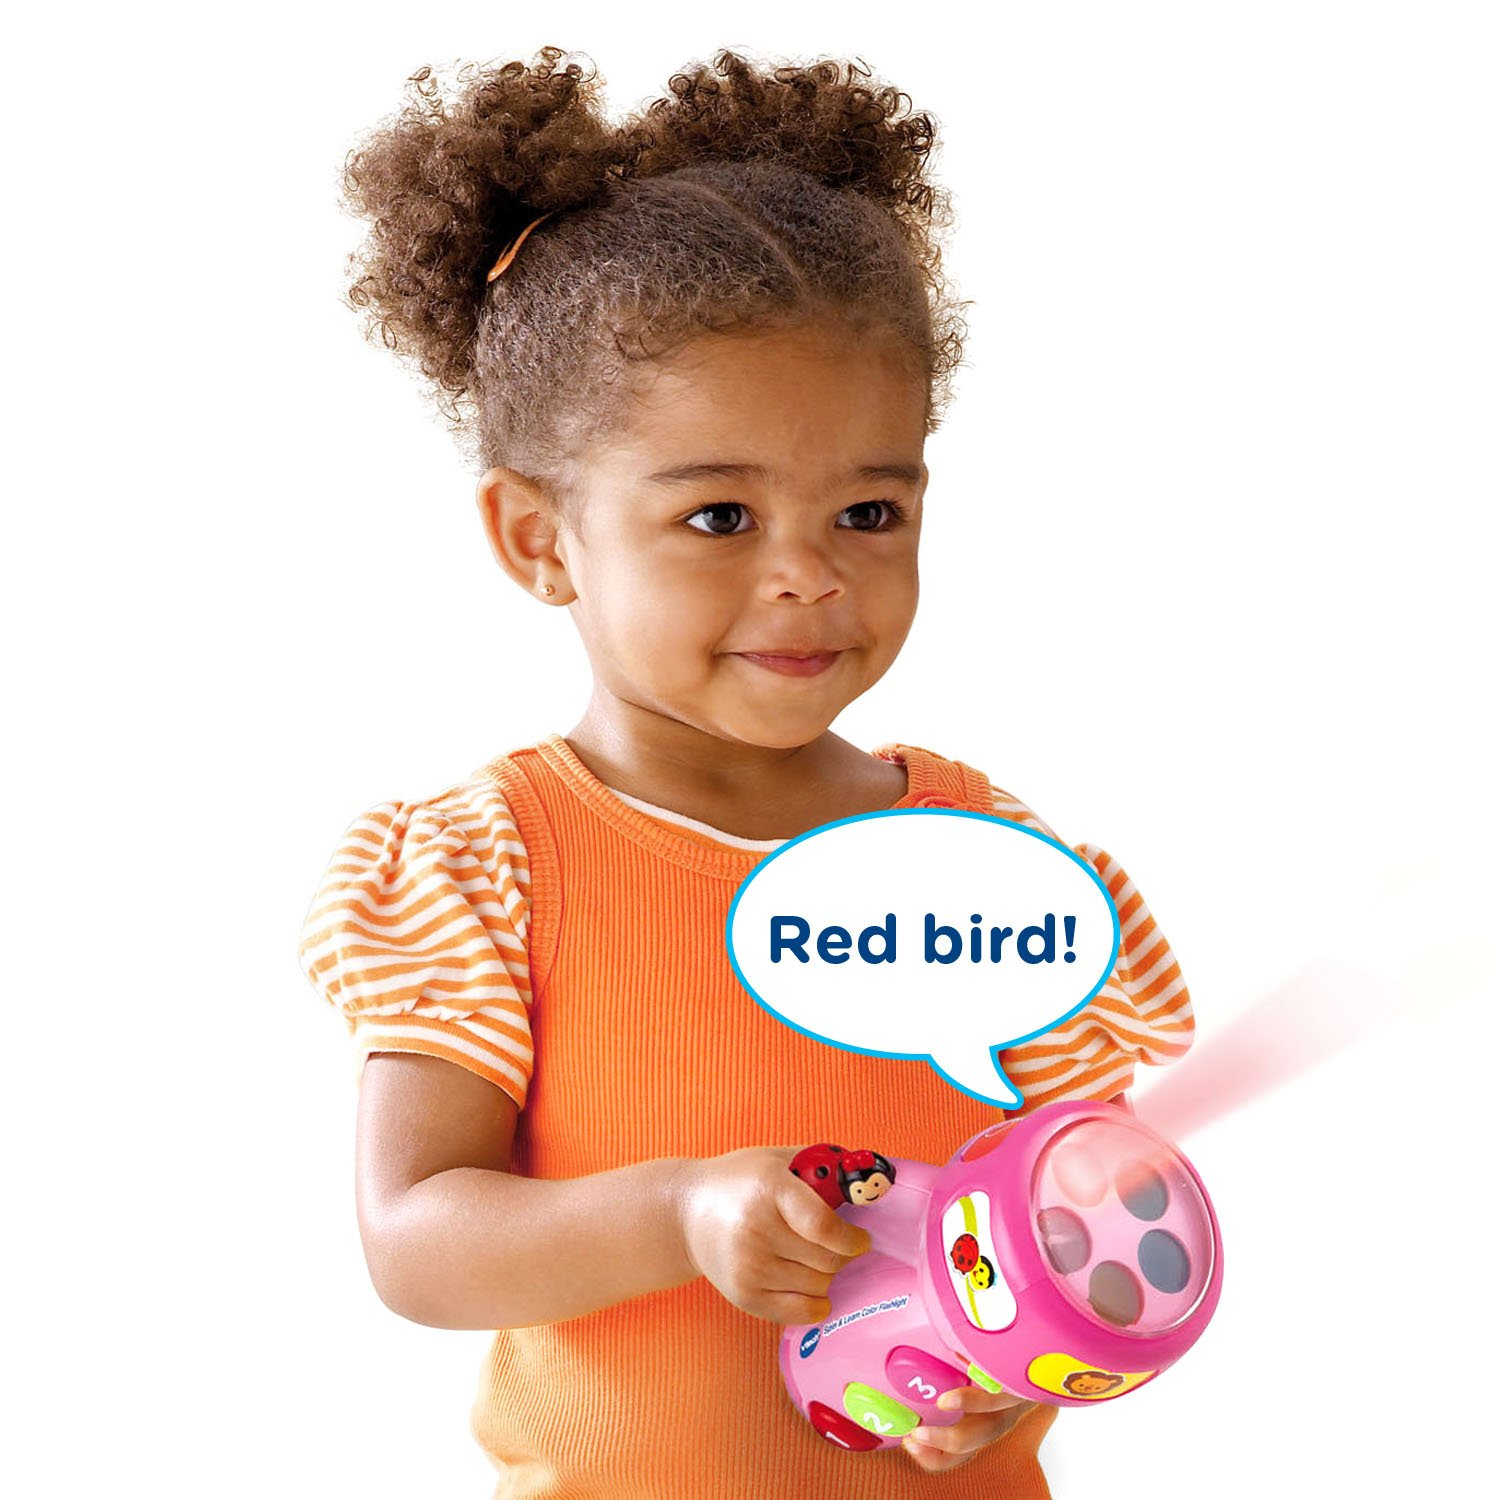 VTech Spin and Learn Color Flashlight Amazon Exclusive, Pink by VTech (Image #5)